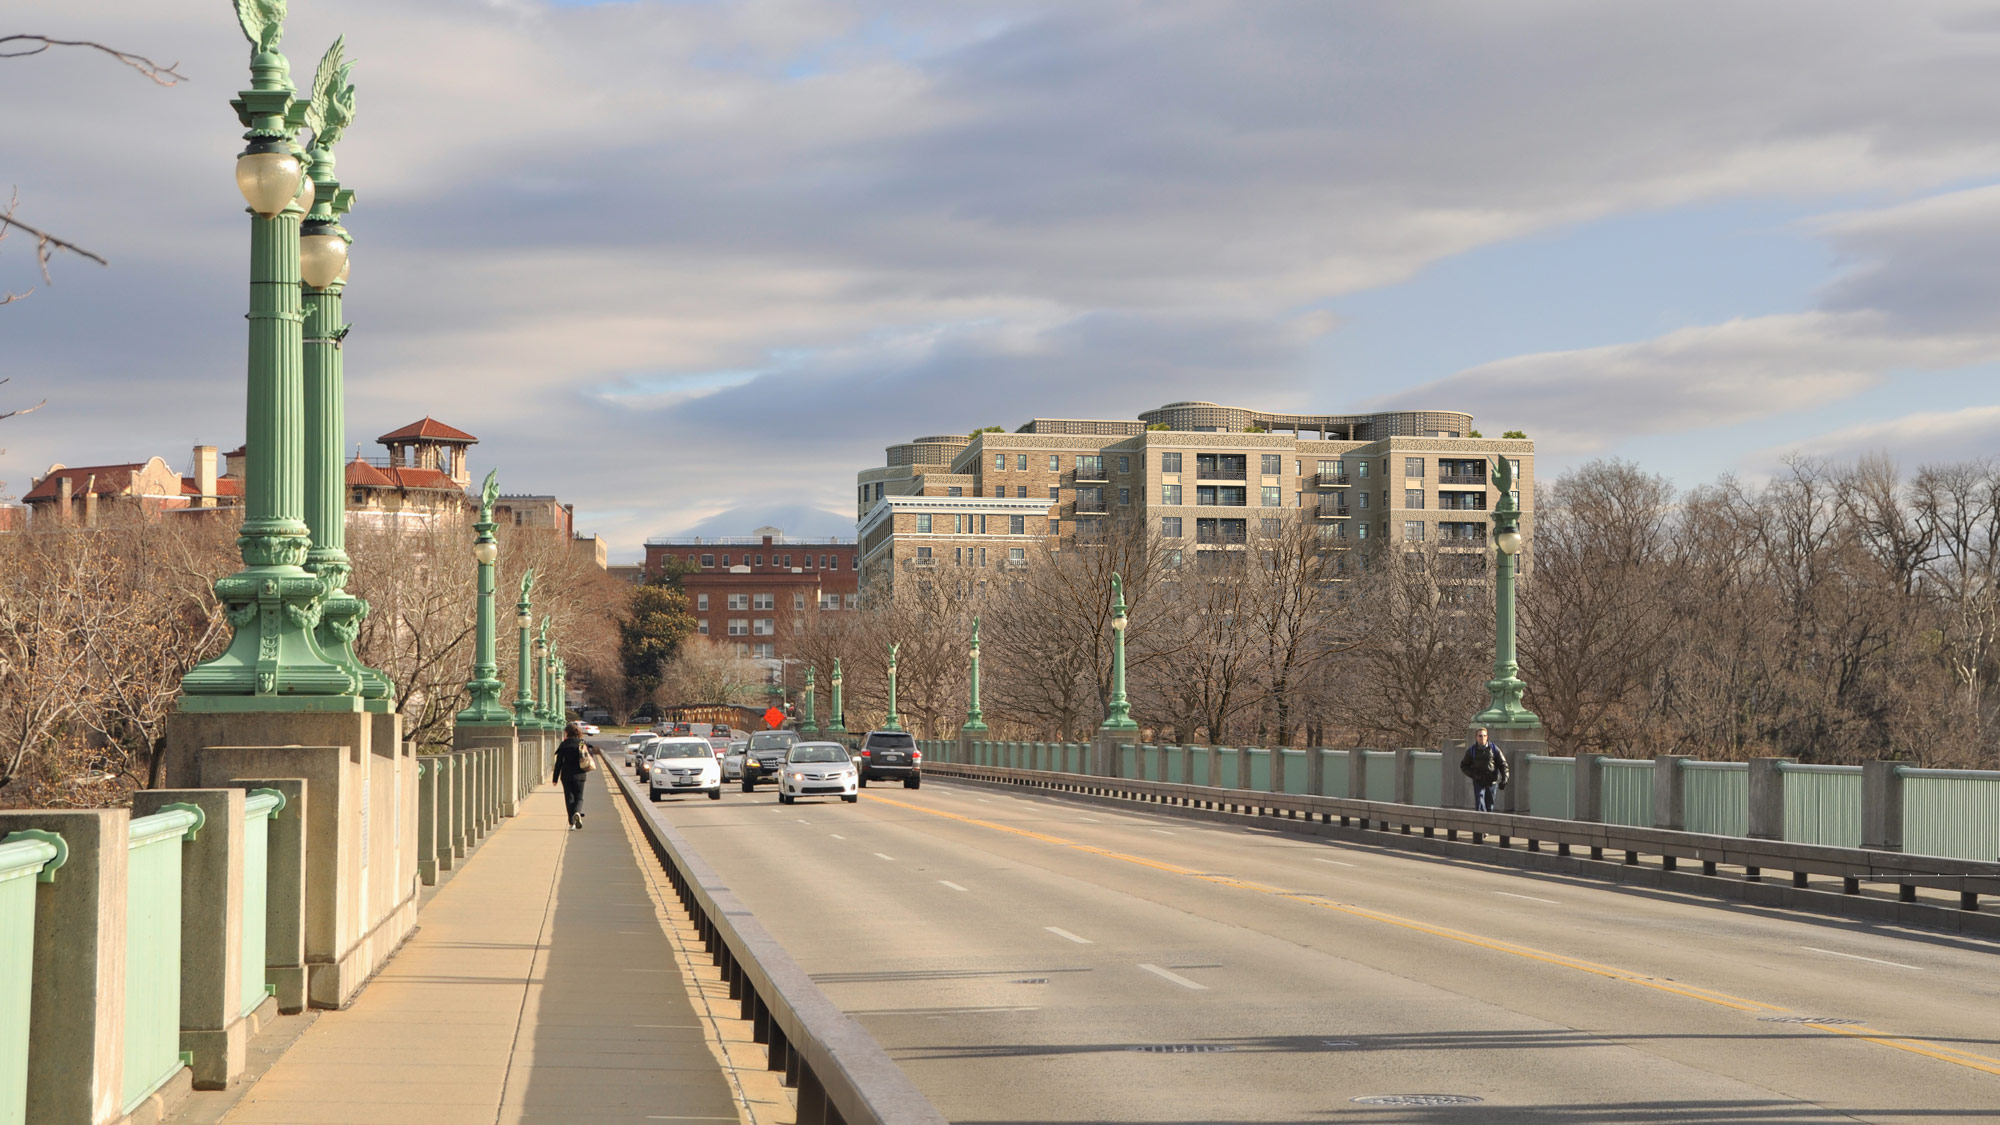 A view of a bridge with two multi-story residential buildings in the distance.